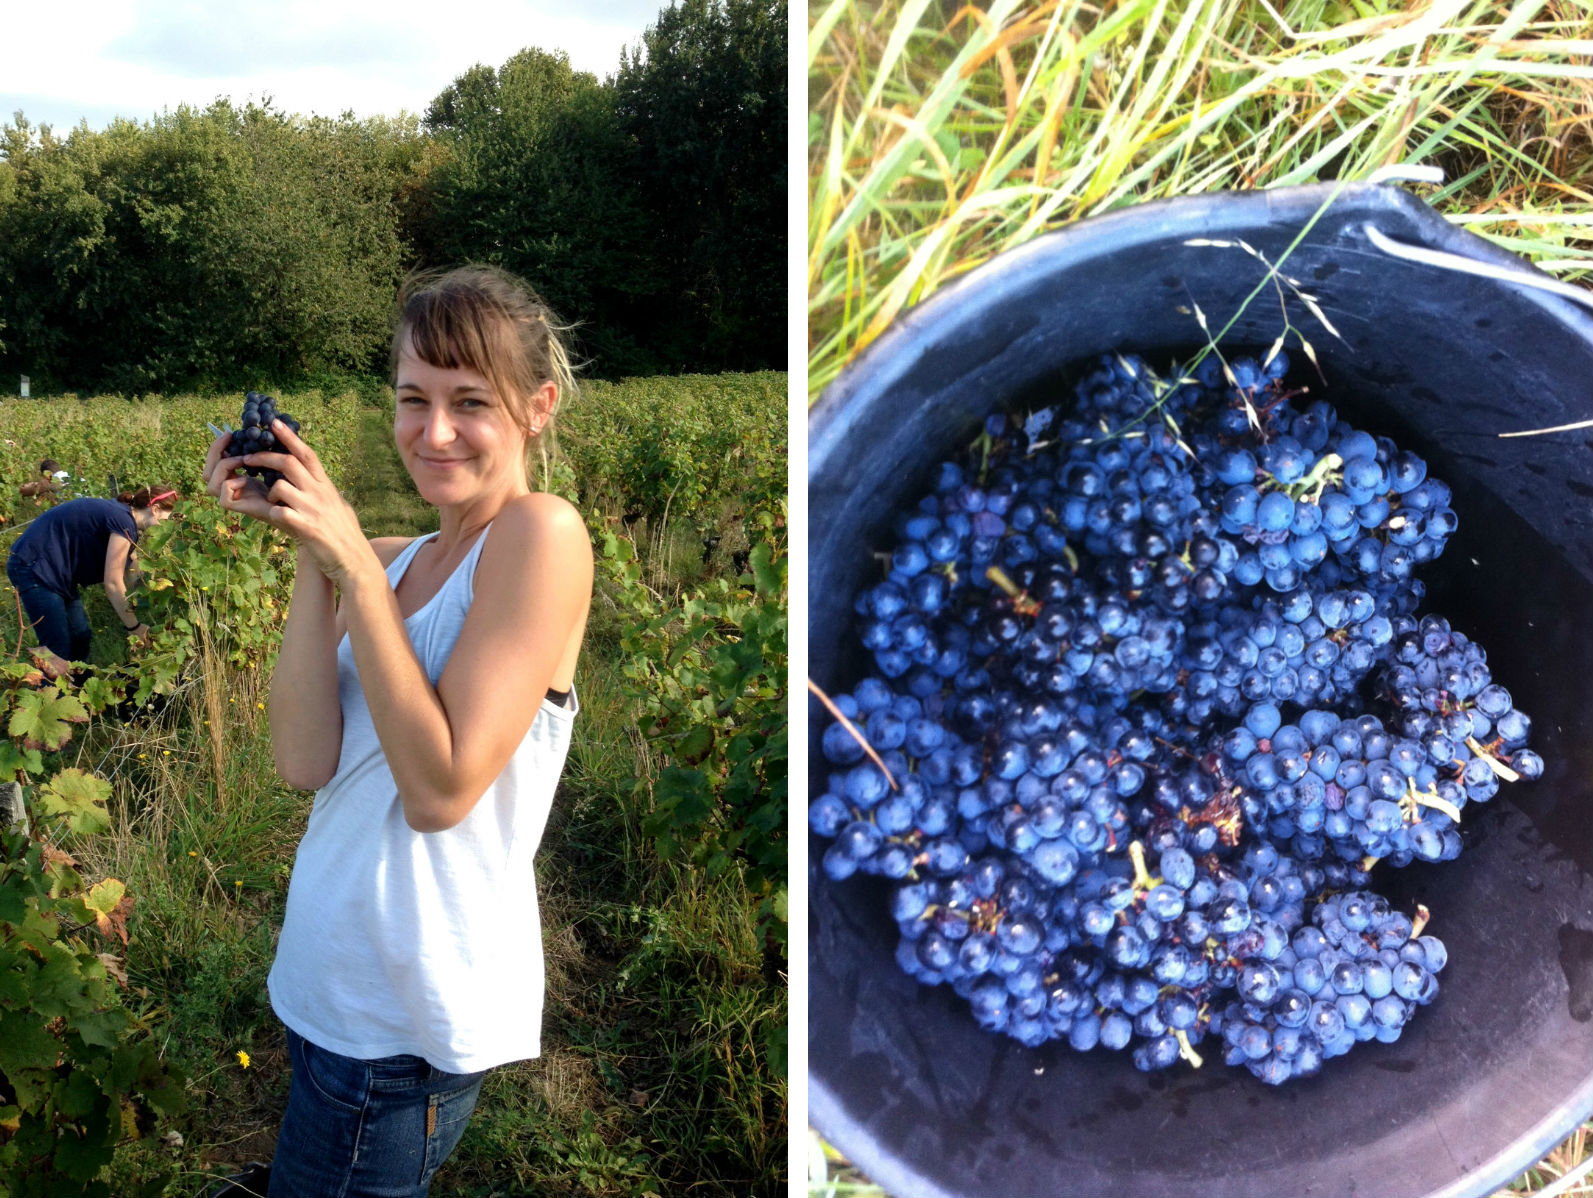 HiP Paris blog. Experiencing the wine harvest in France. Fun (but backbreaking!) work.